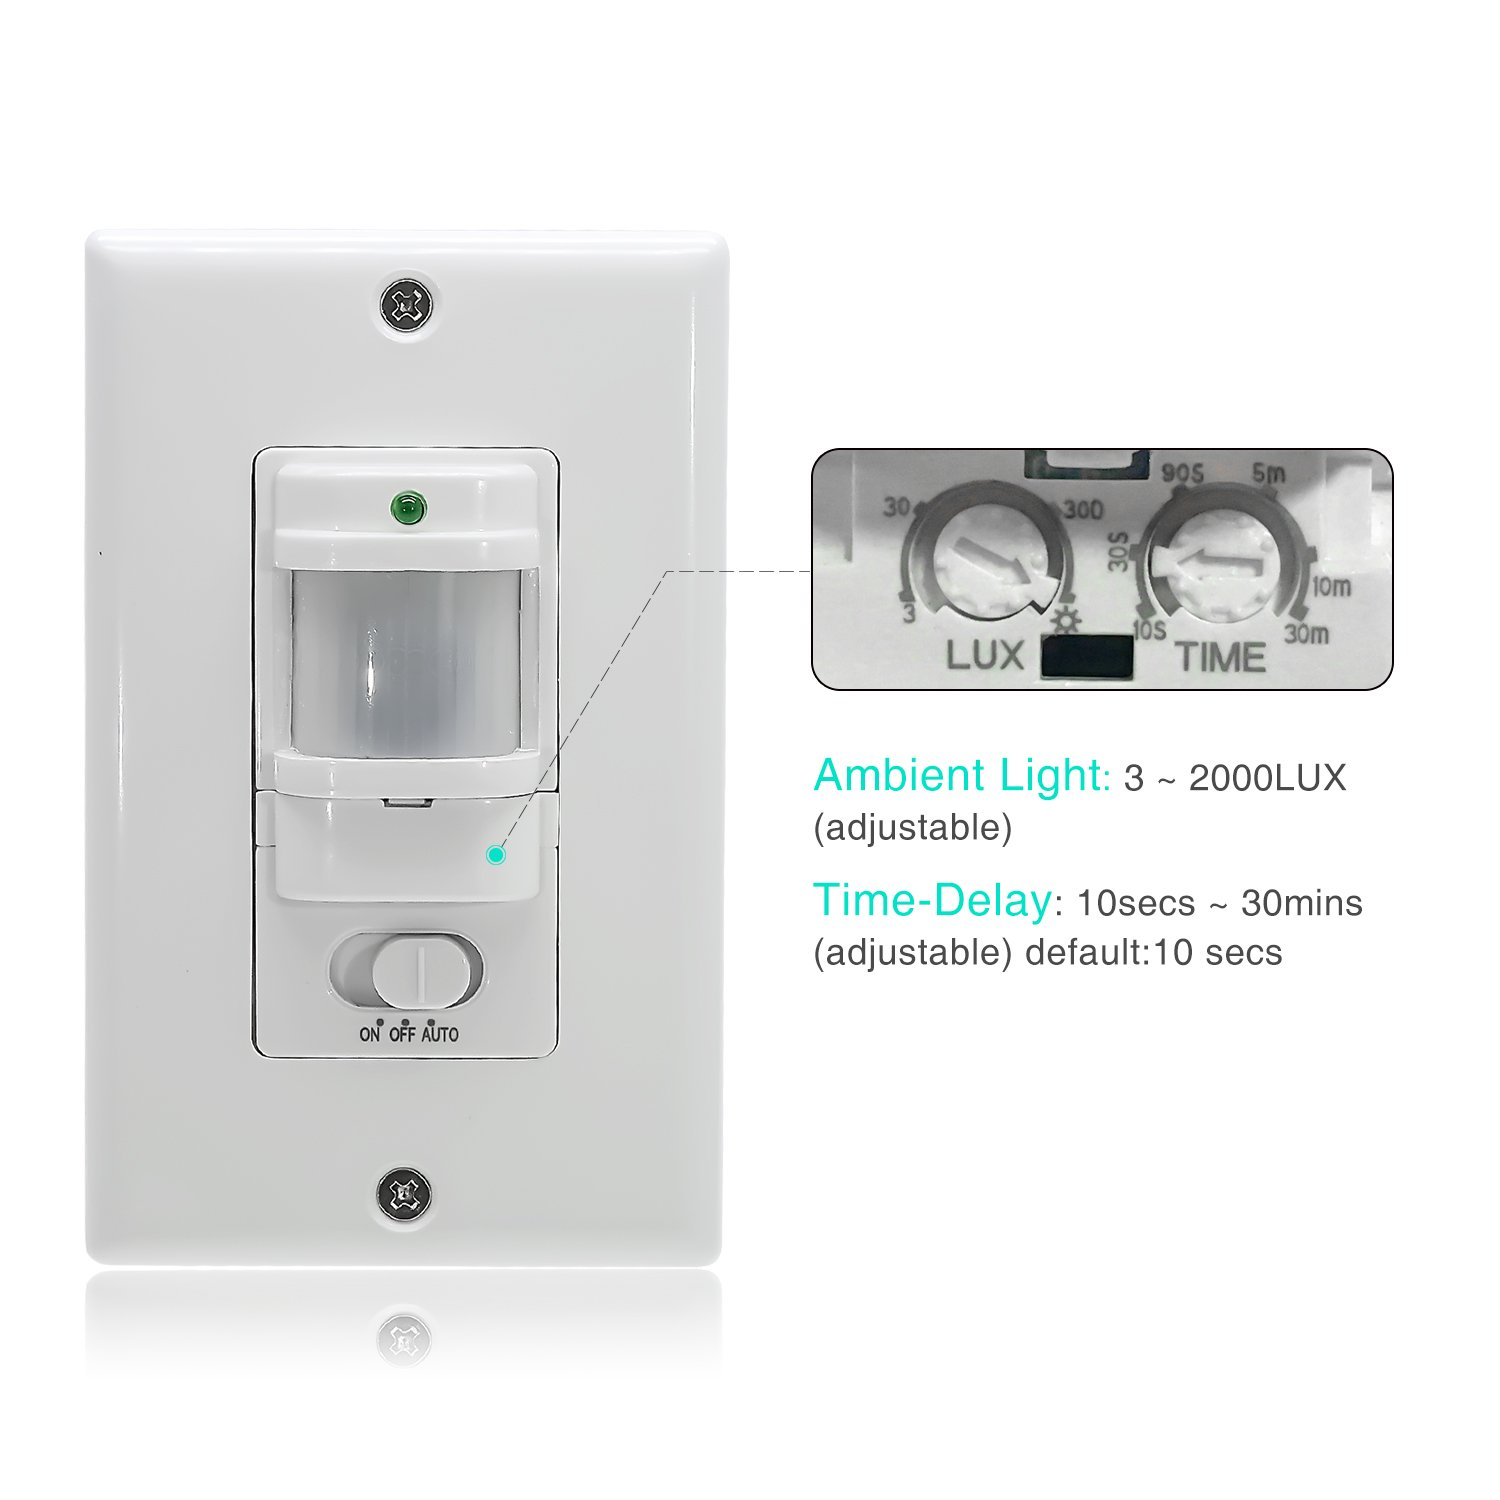 Sensky Bs033c Motion Sensor Light Switch Occupancy Two Way Switching Is Usually Needed On Stairs Corridors Or Large For Corridor And Staircase Neutral Wire Required Industrial Scientific